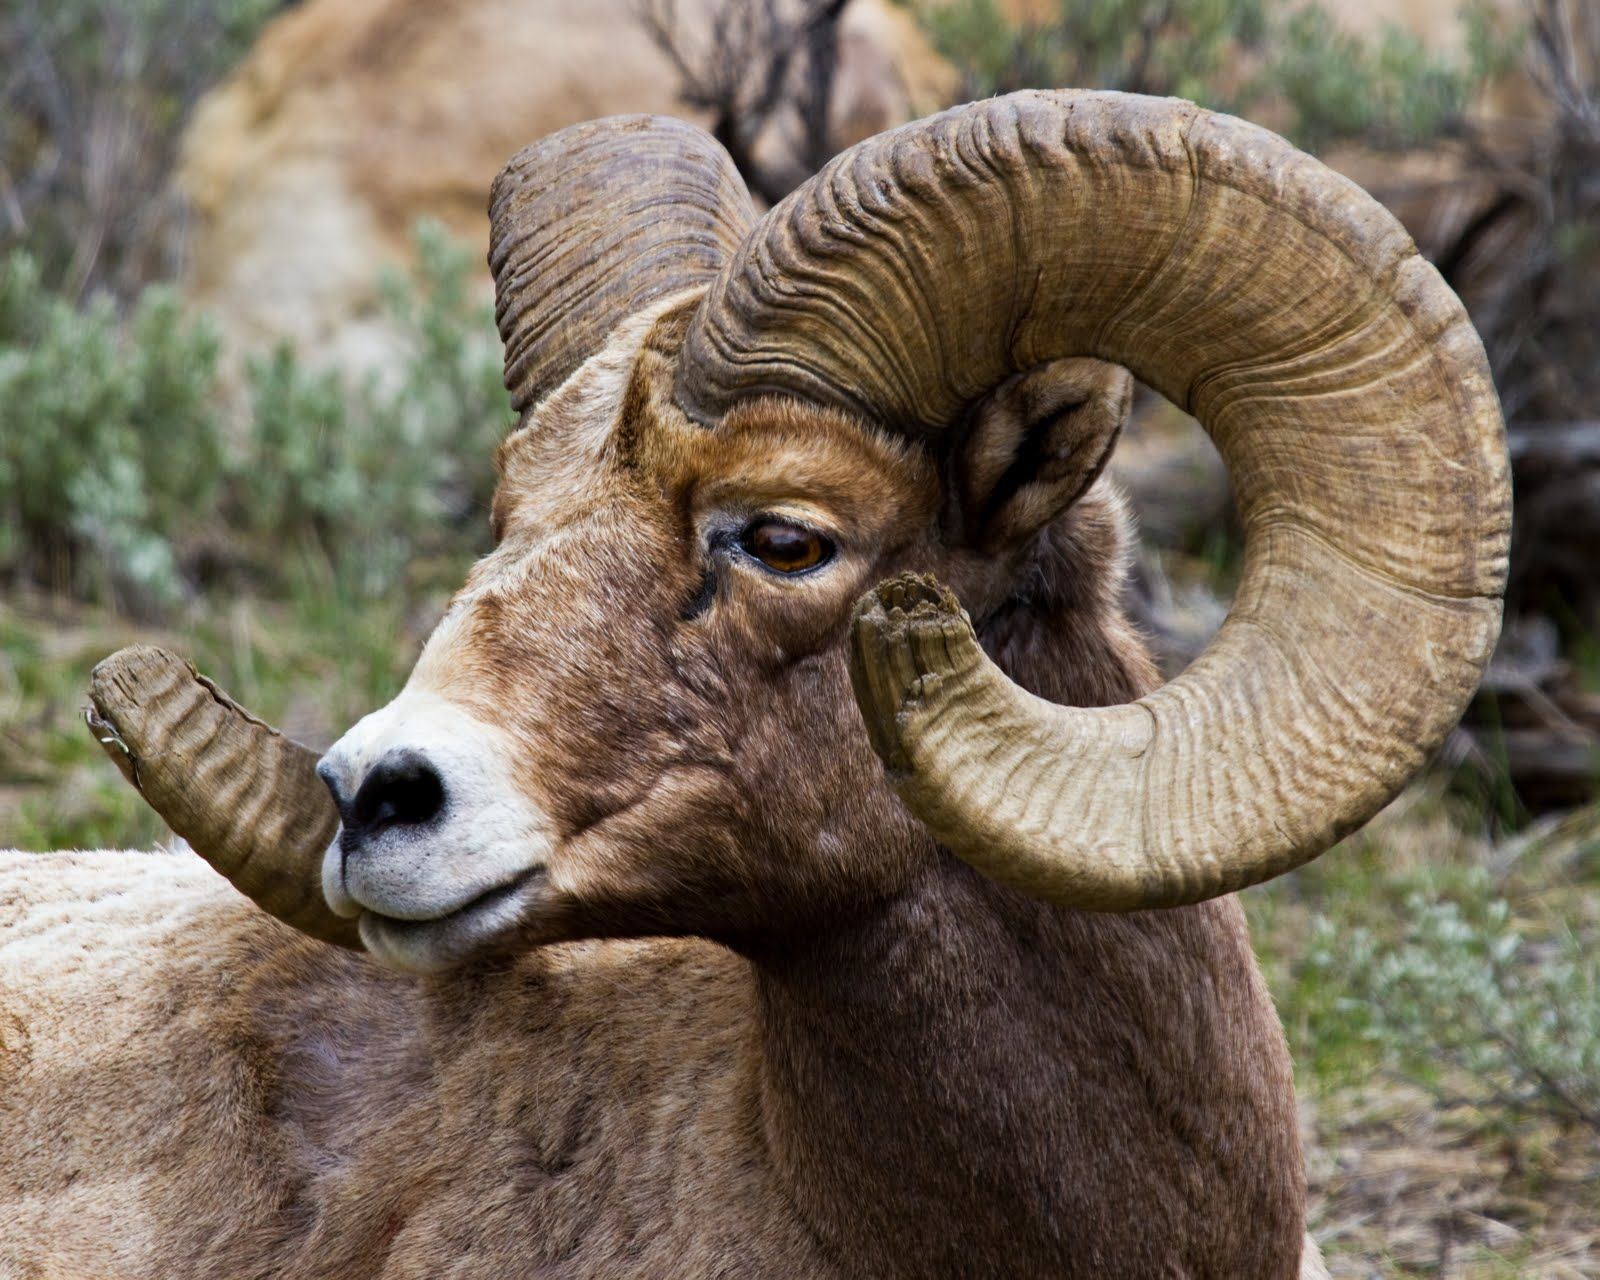 Pin By Samantha Rogers On Warden Textures Pinterest Ram Horns